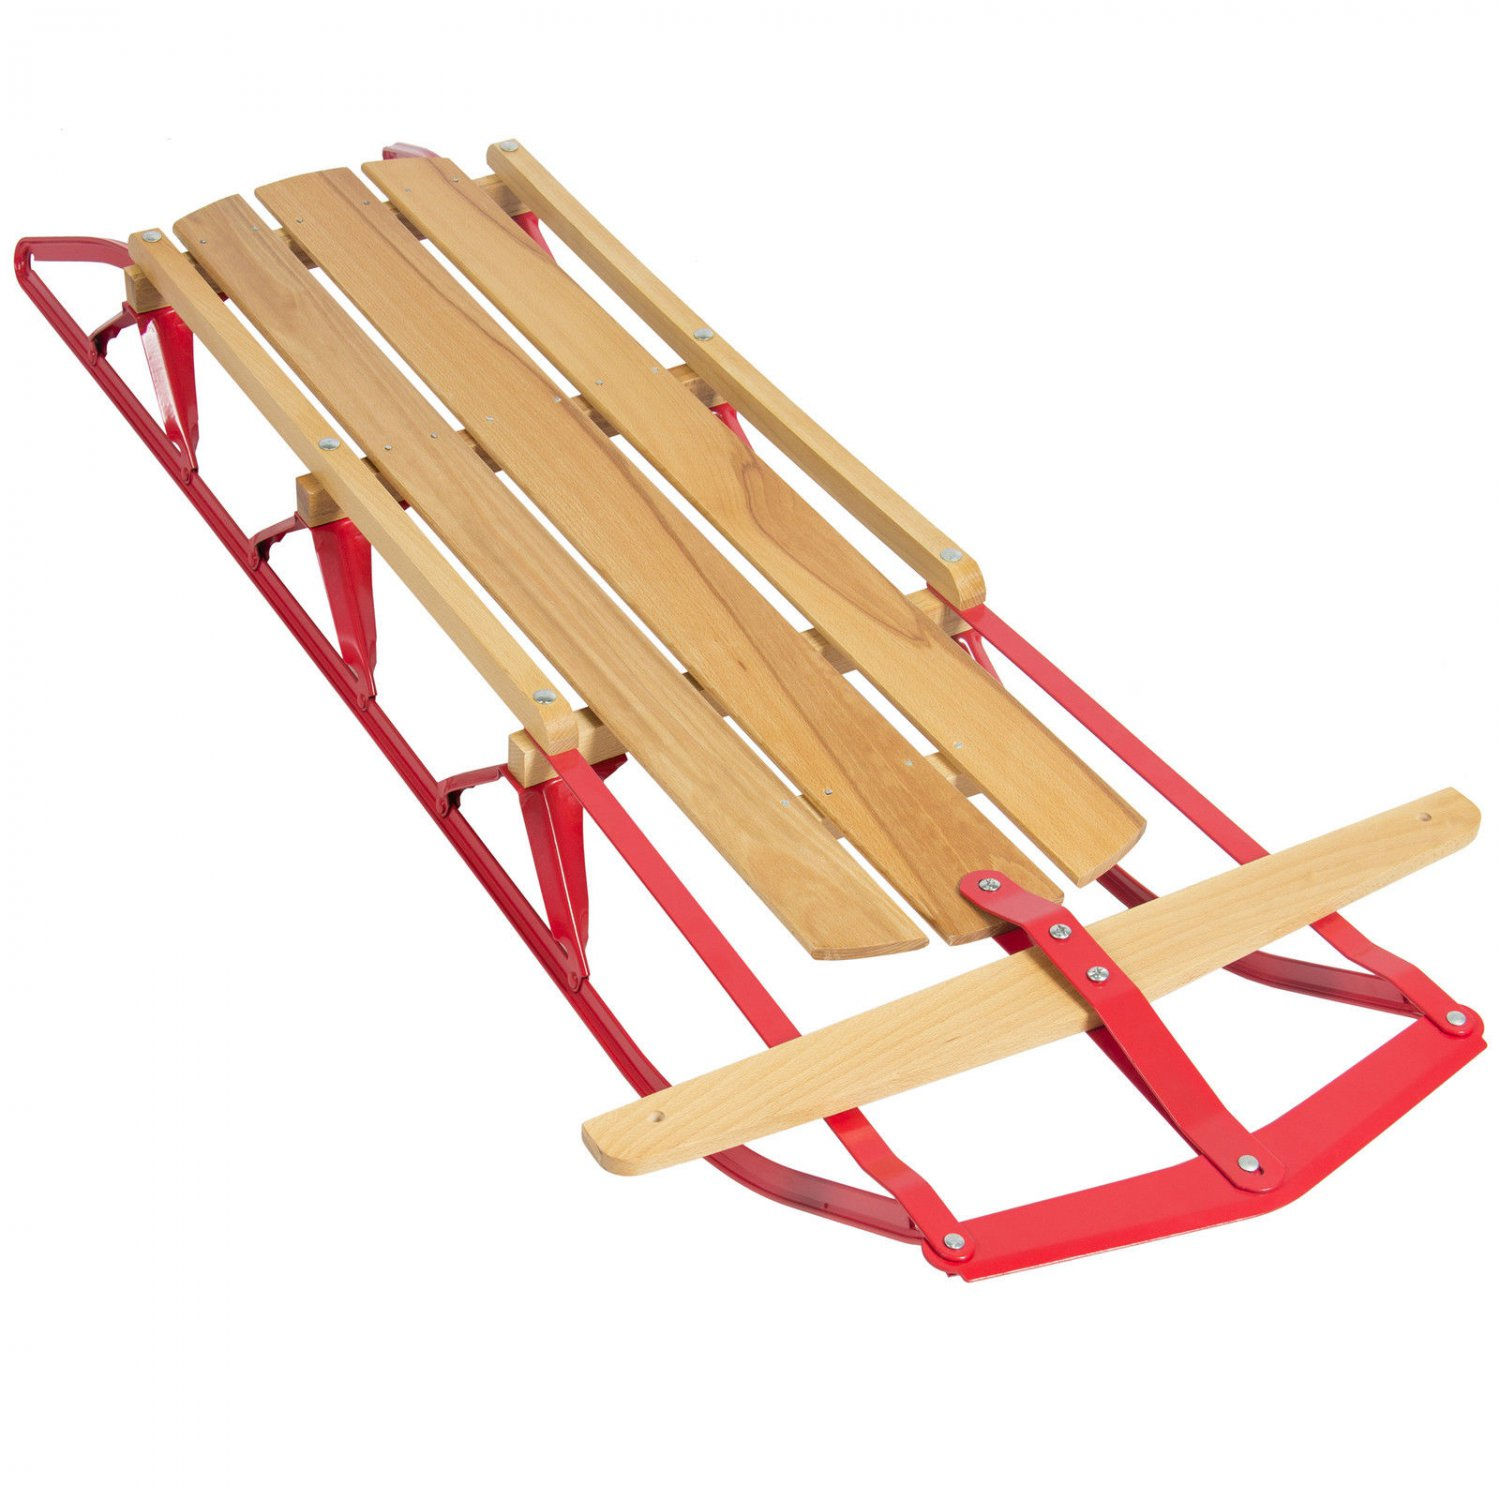 wood snow sled scooter toboggan wooden sledge ski sliding. Black Bedroom Furniture Sets. Home Design Ideas